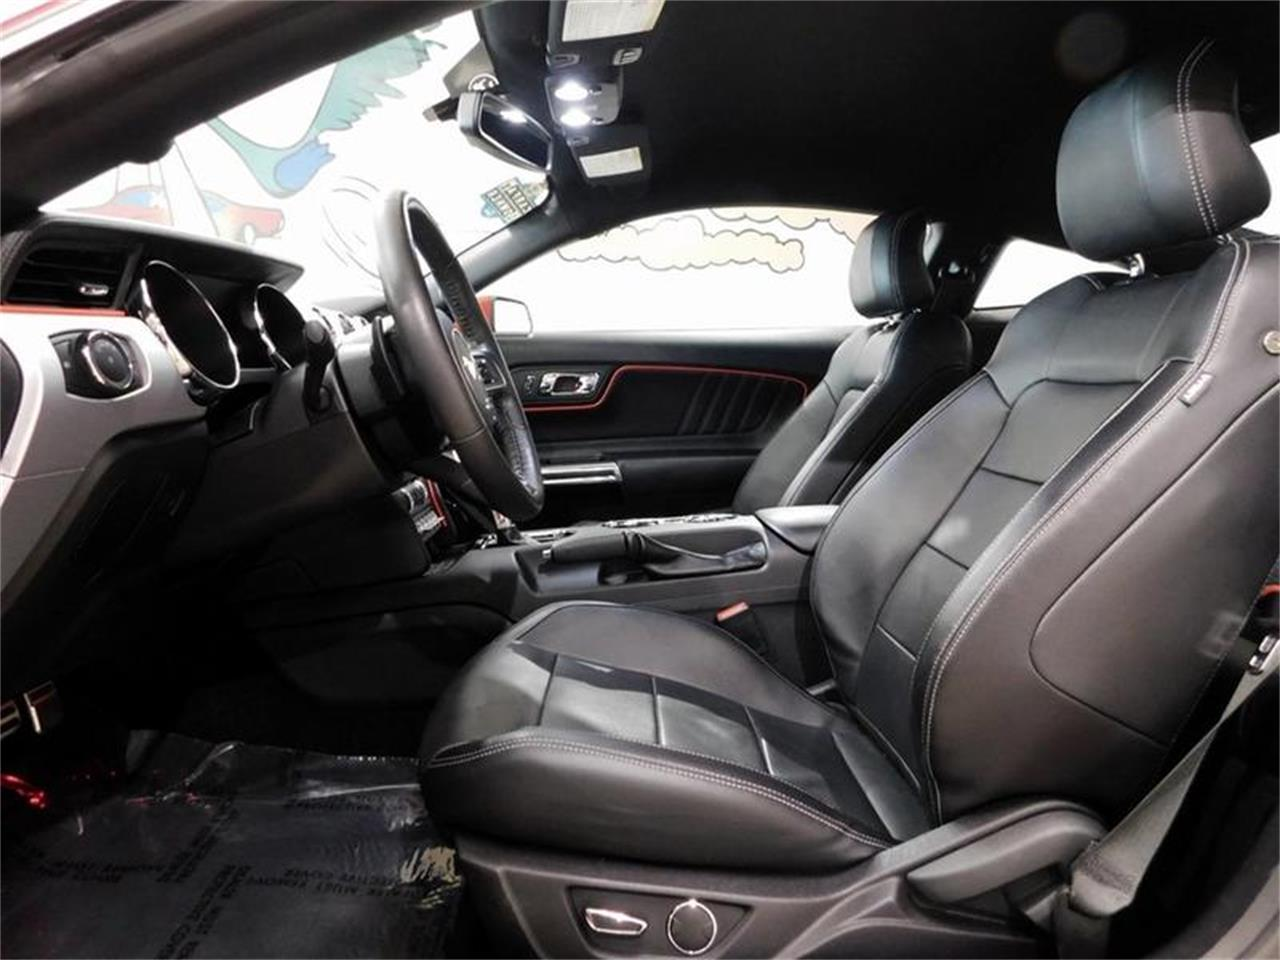 2015 Ford Mustang for sale in Hamburg, NY – photo 93